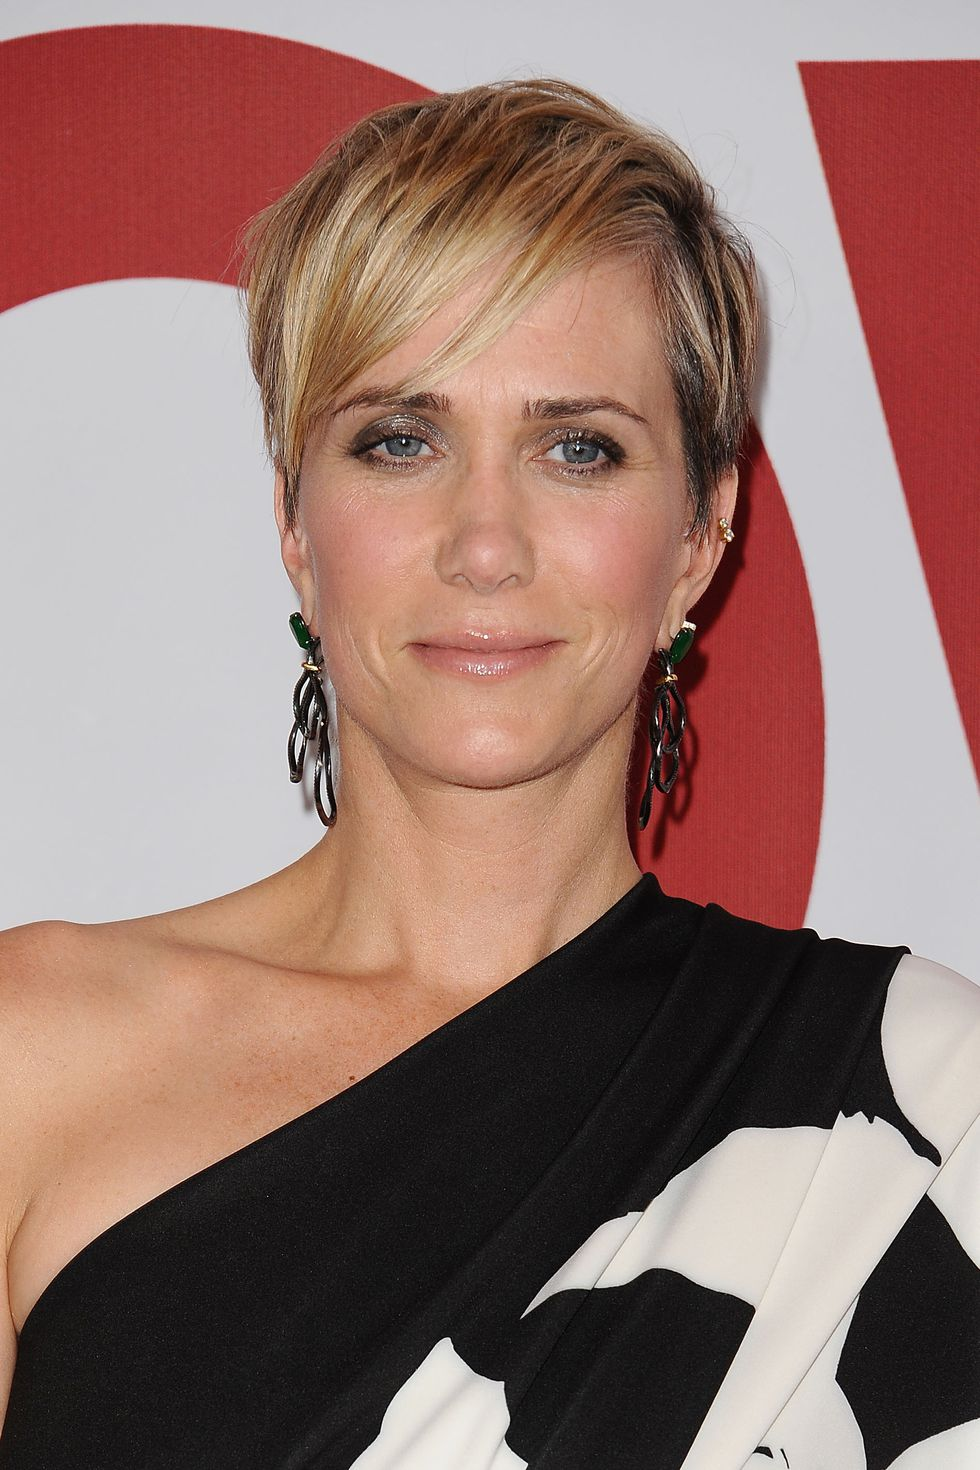 Angled-Bangs Best Short Pixie Cut Hairstyles - Cute Pixie Haircuts for Women